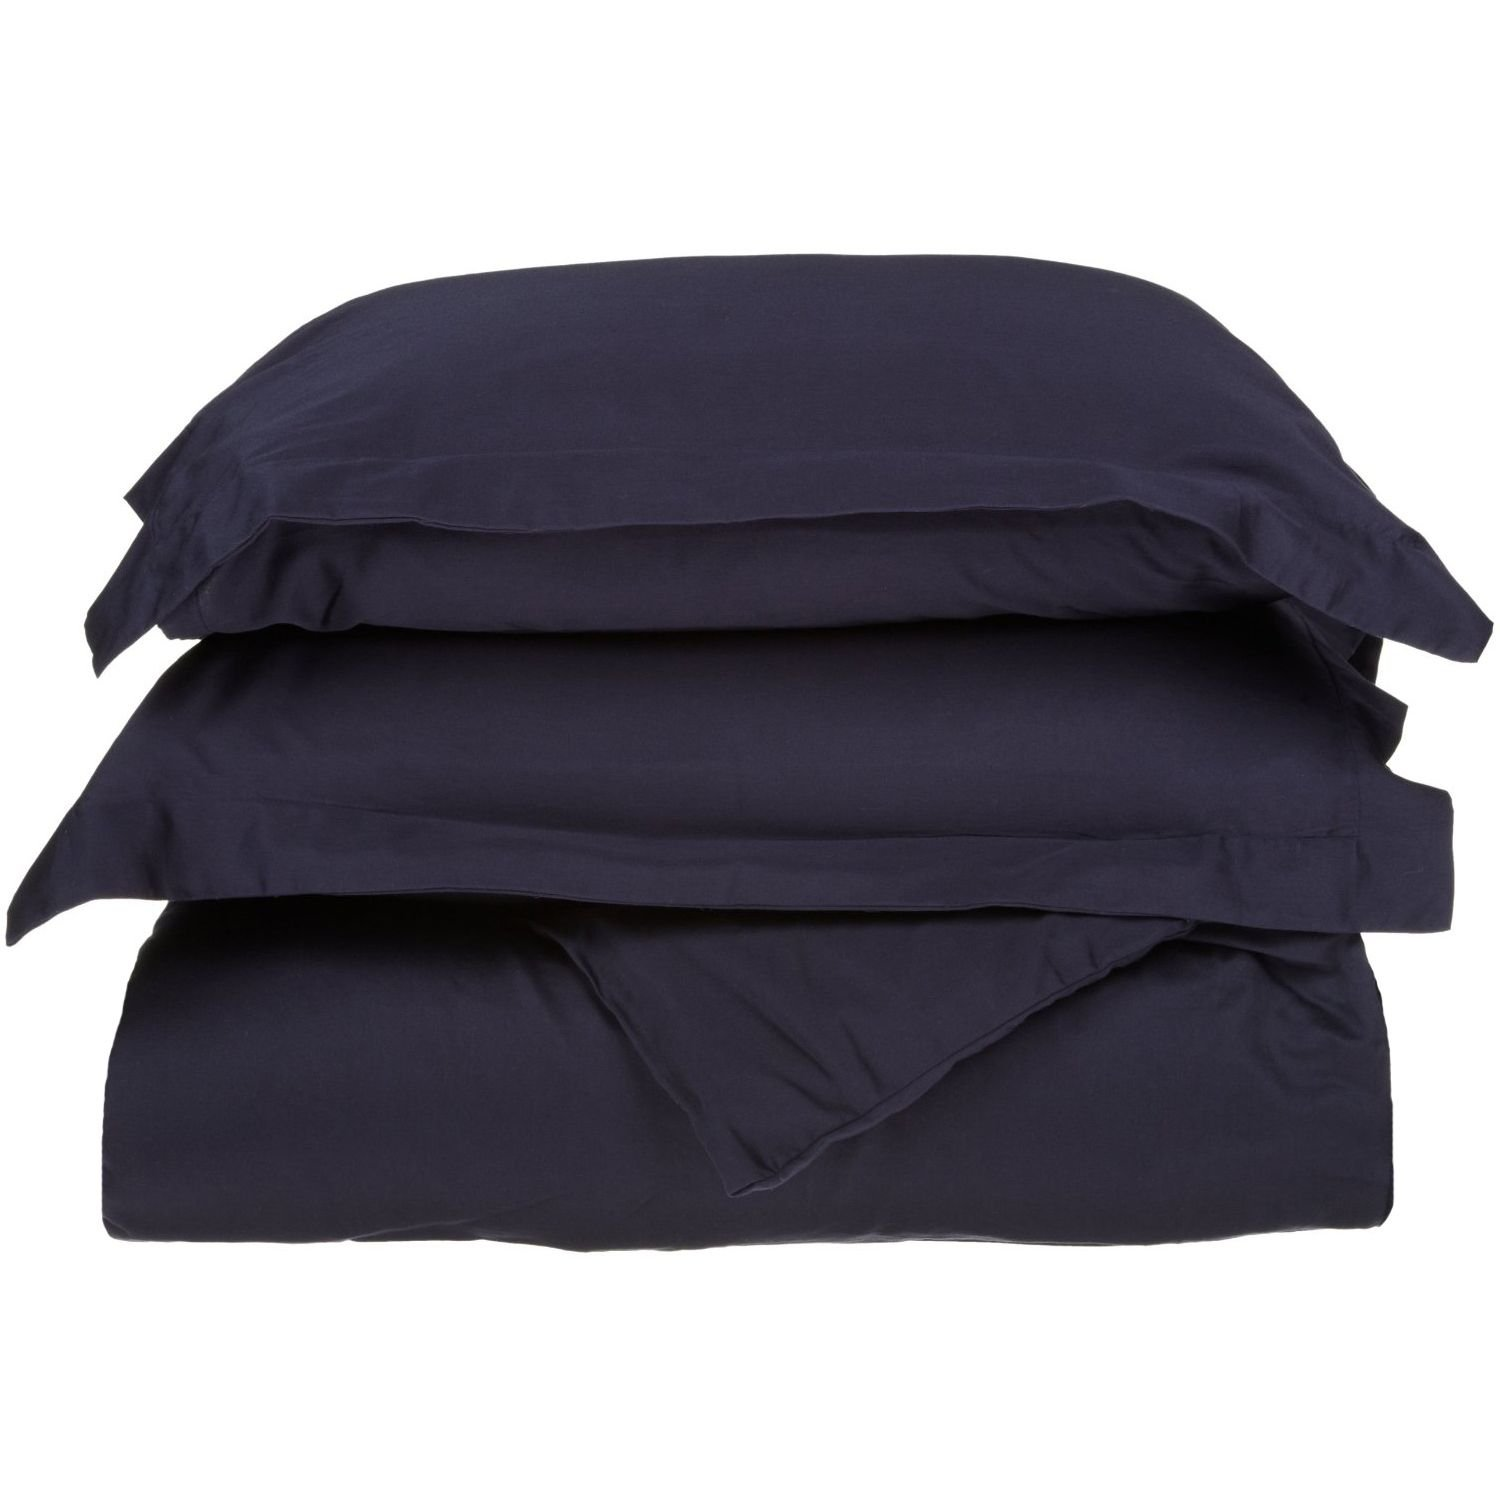 Navy bluee Full Queen 500 Thread Count 100% Cotton, Single Ply, 2-Piece Twin Twin XL Duvet Cover Set, Solid, Ivory